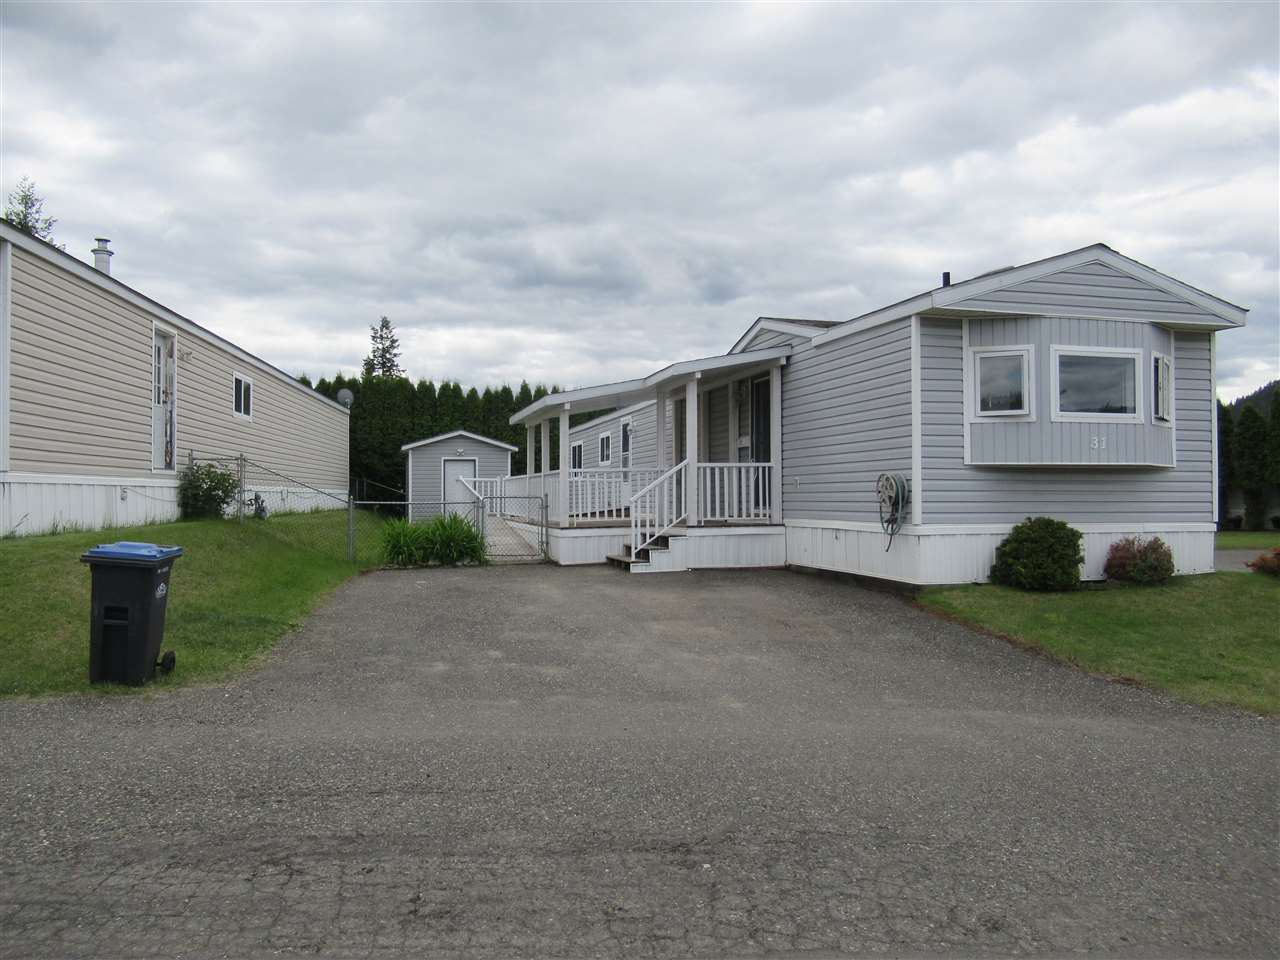 Main Photo: 31 1400 WESTERN Avenue in Williams Lake: Williams Lake - City Manufactured Home for sale (Williams Lake (Zone 27))  : MLS®# R2466006